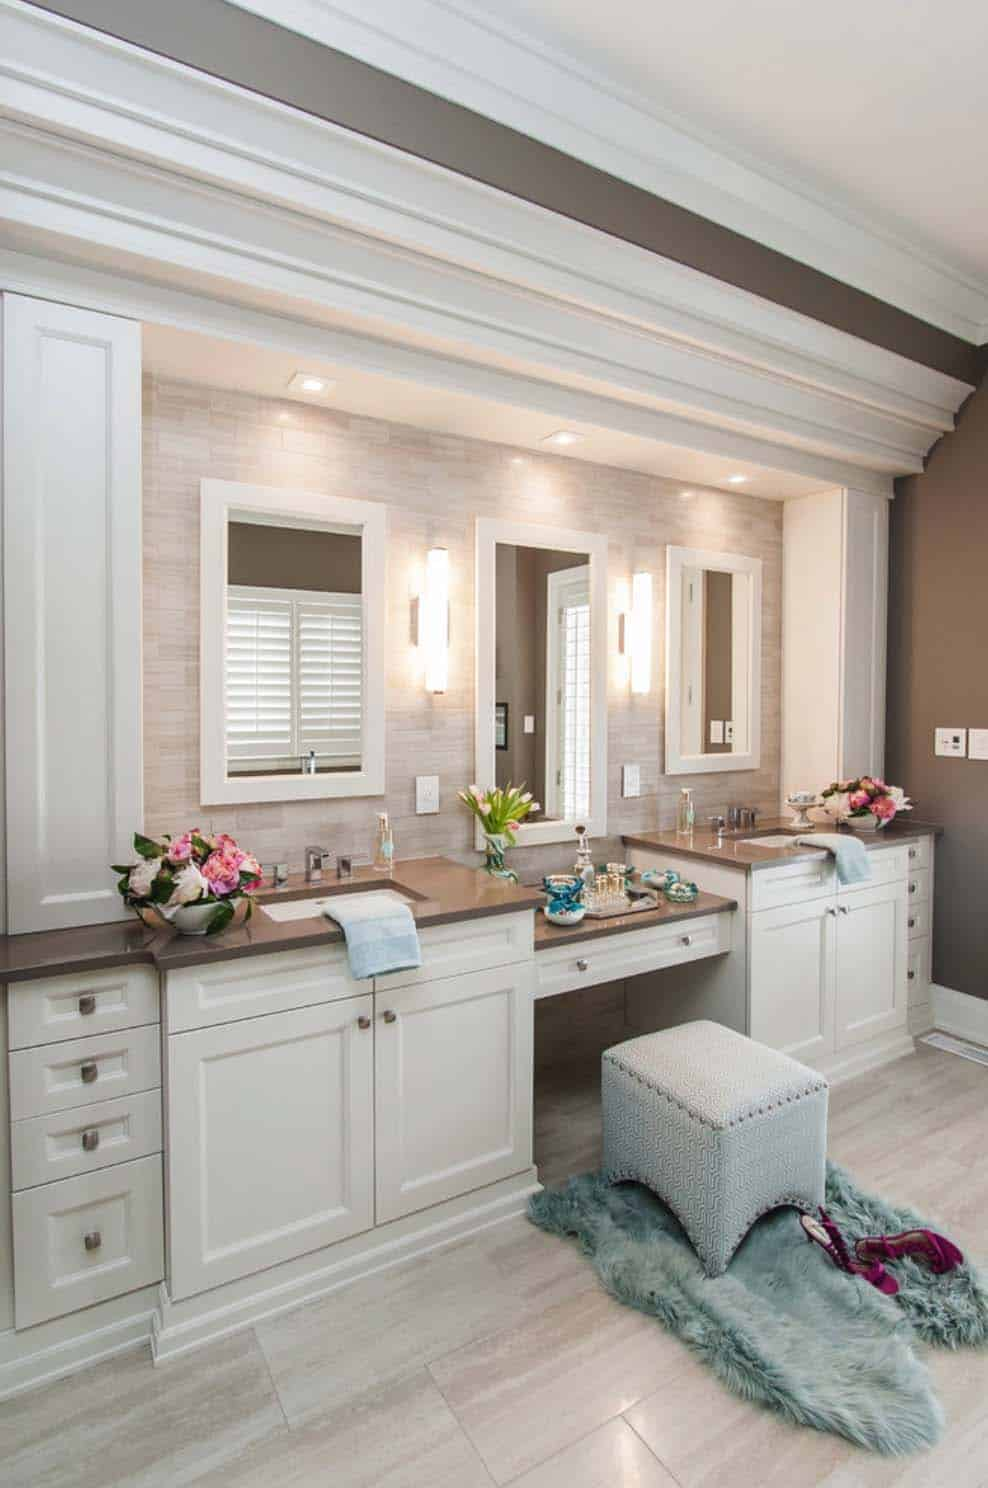 53 most fabulous traditional style bathroom designs ever for Bathrooms designs